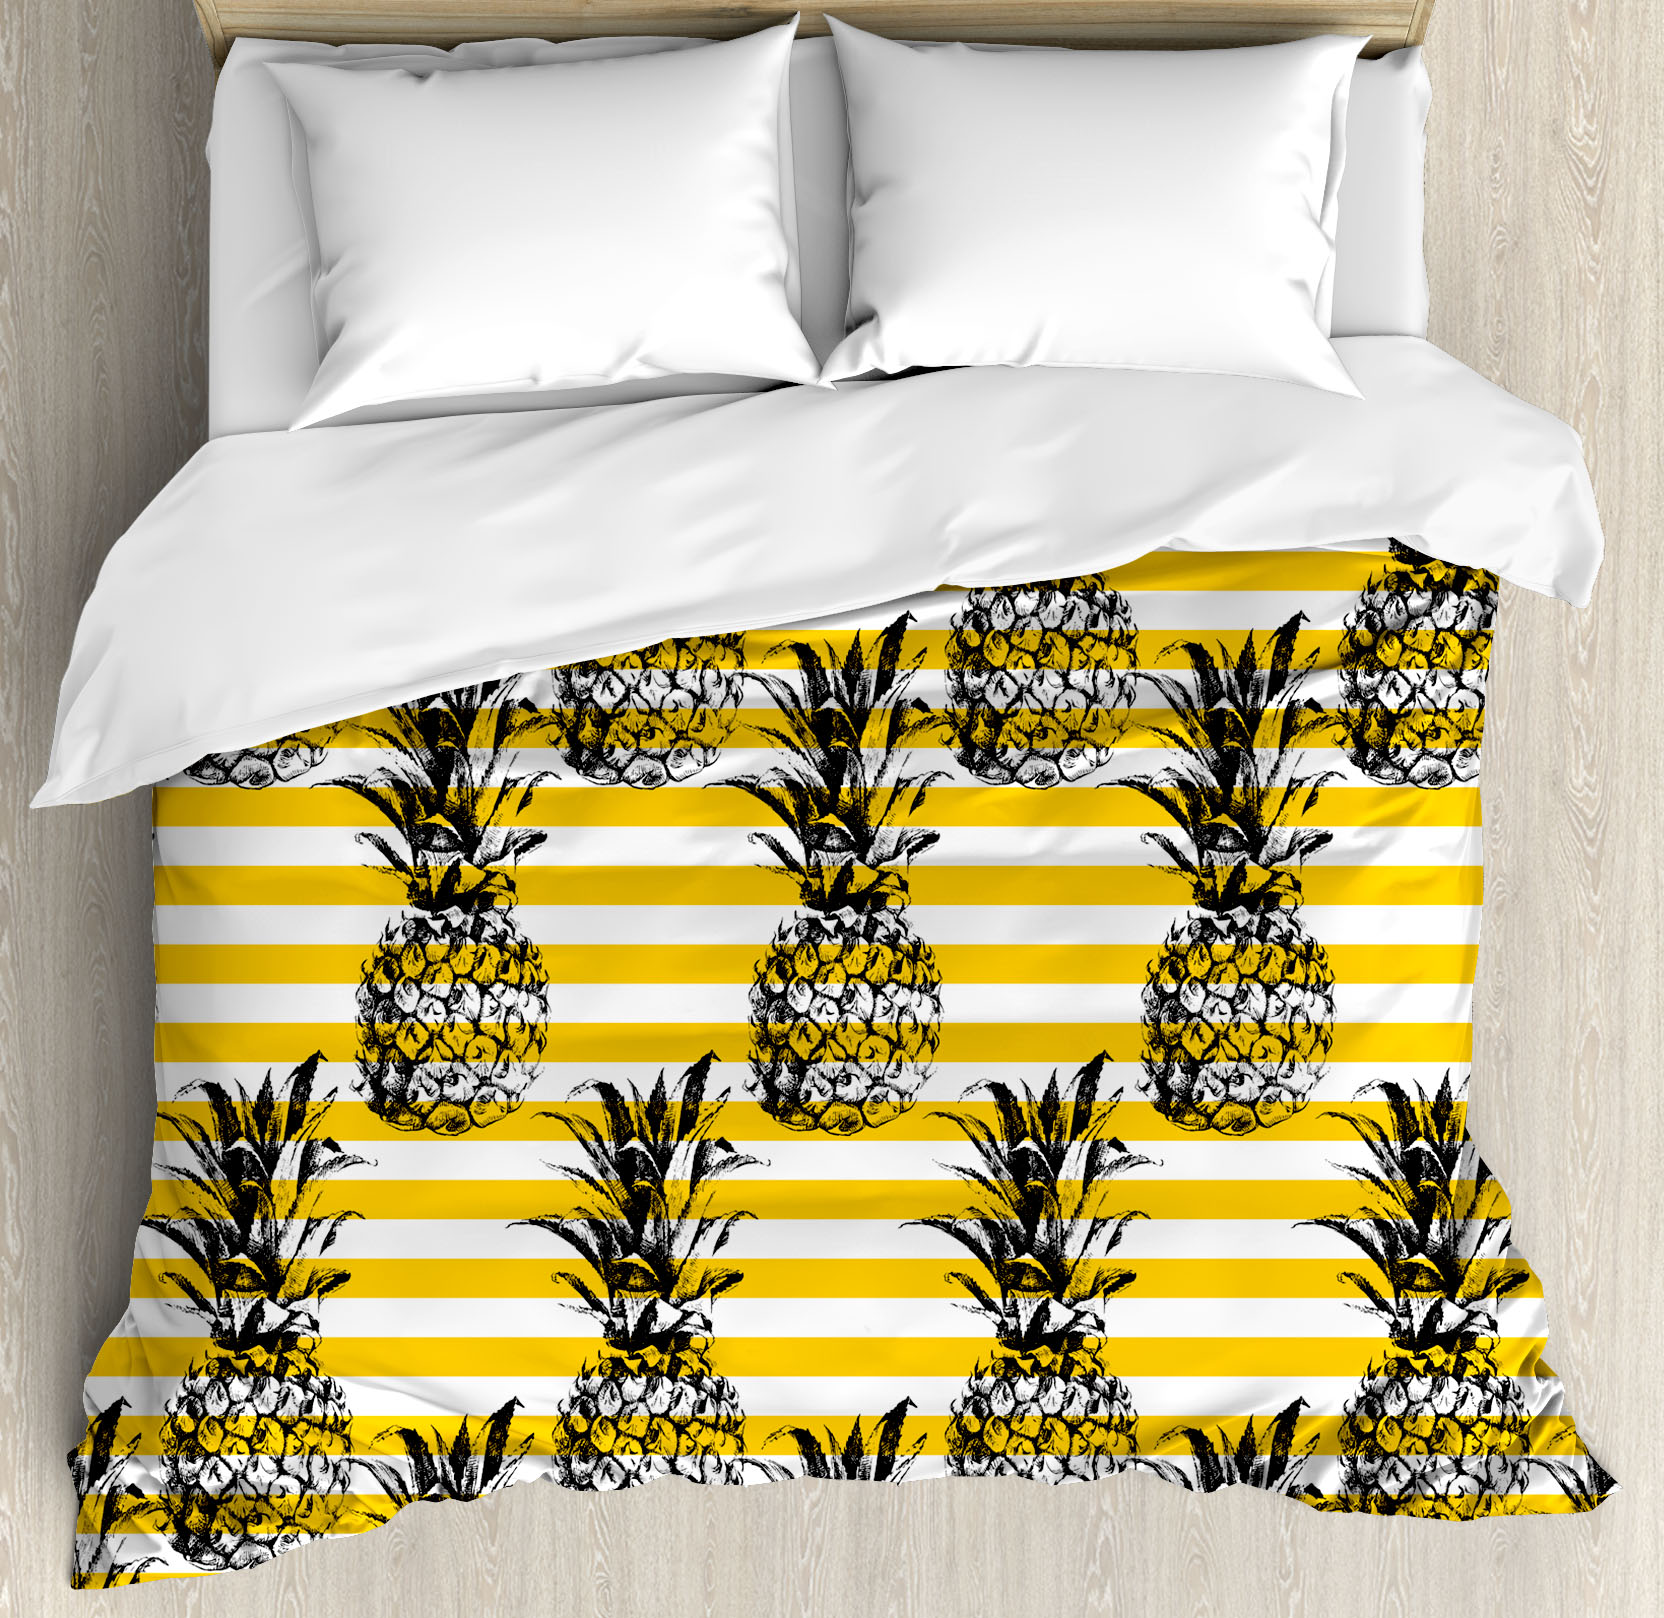 Grunge Duvet Cover Set, Retro Striped Background with Pineapple Figures Vintage Hippie Graphic, Decorative Bedding Set with Pillow Shams, Black and Earth Yellow, by Ambesonne